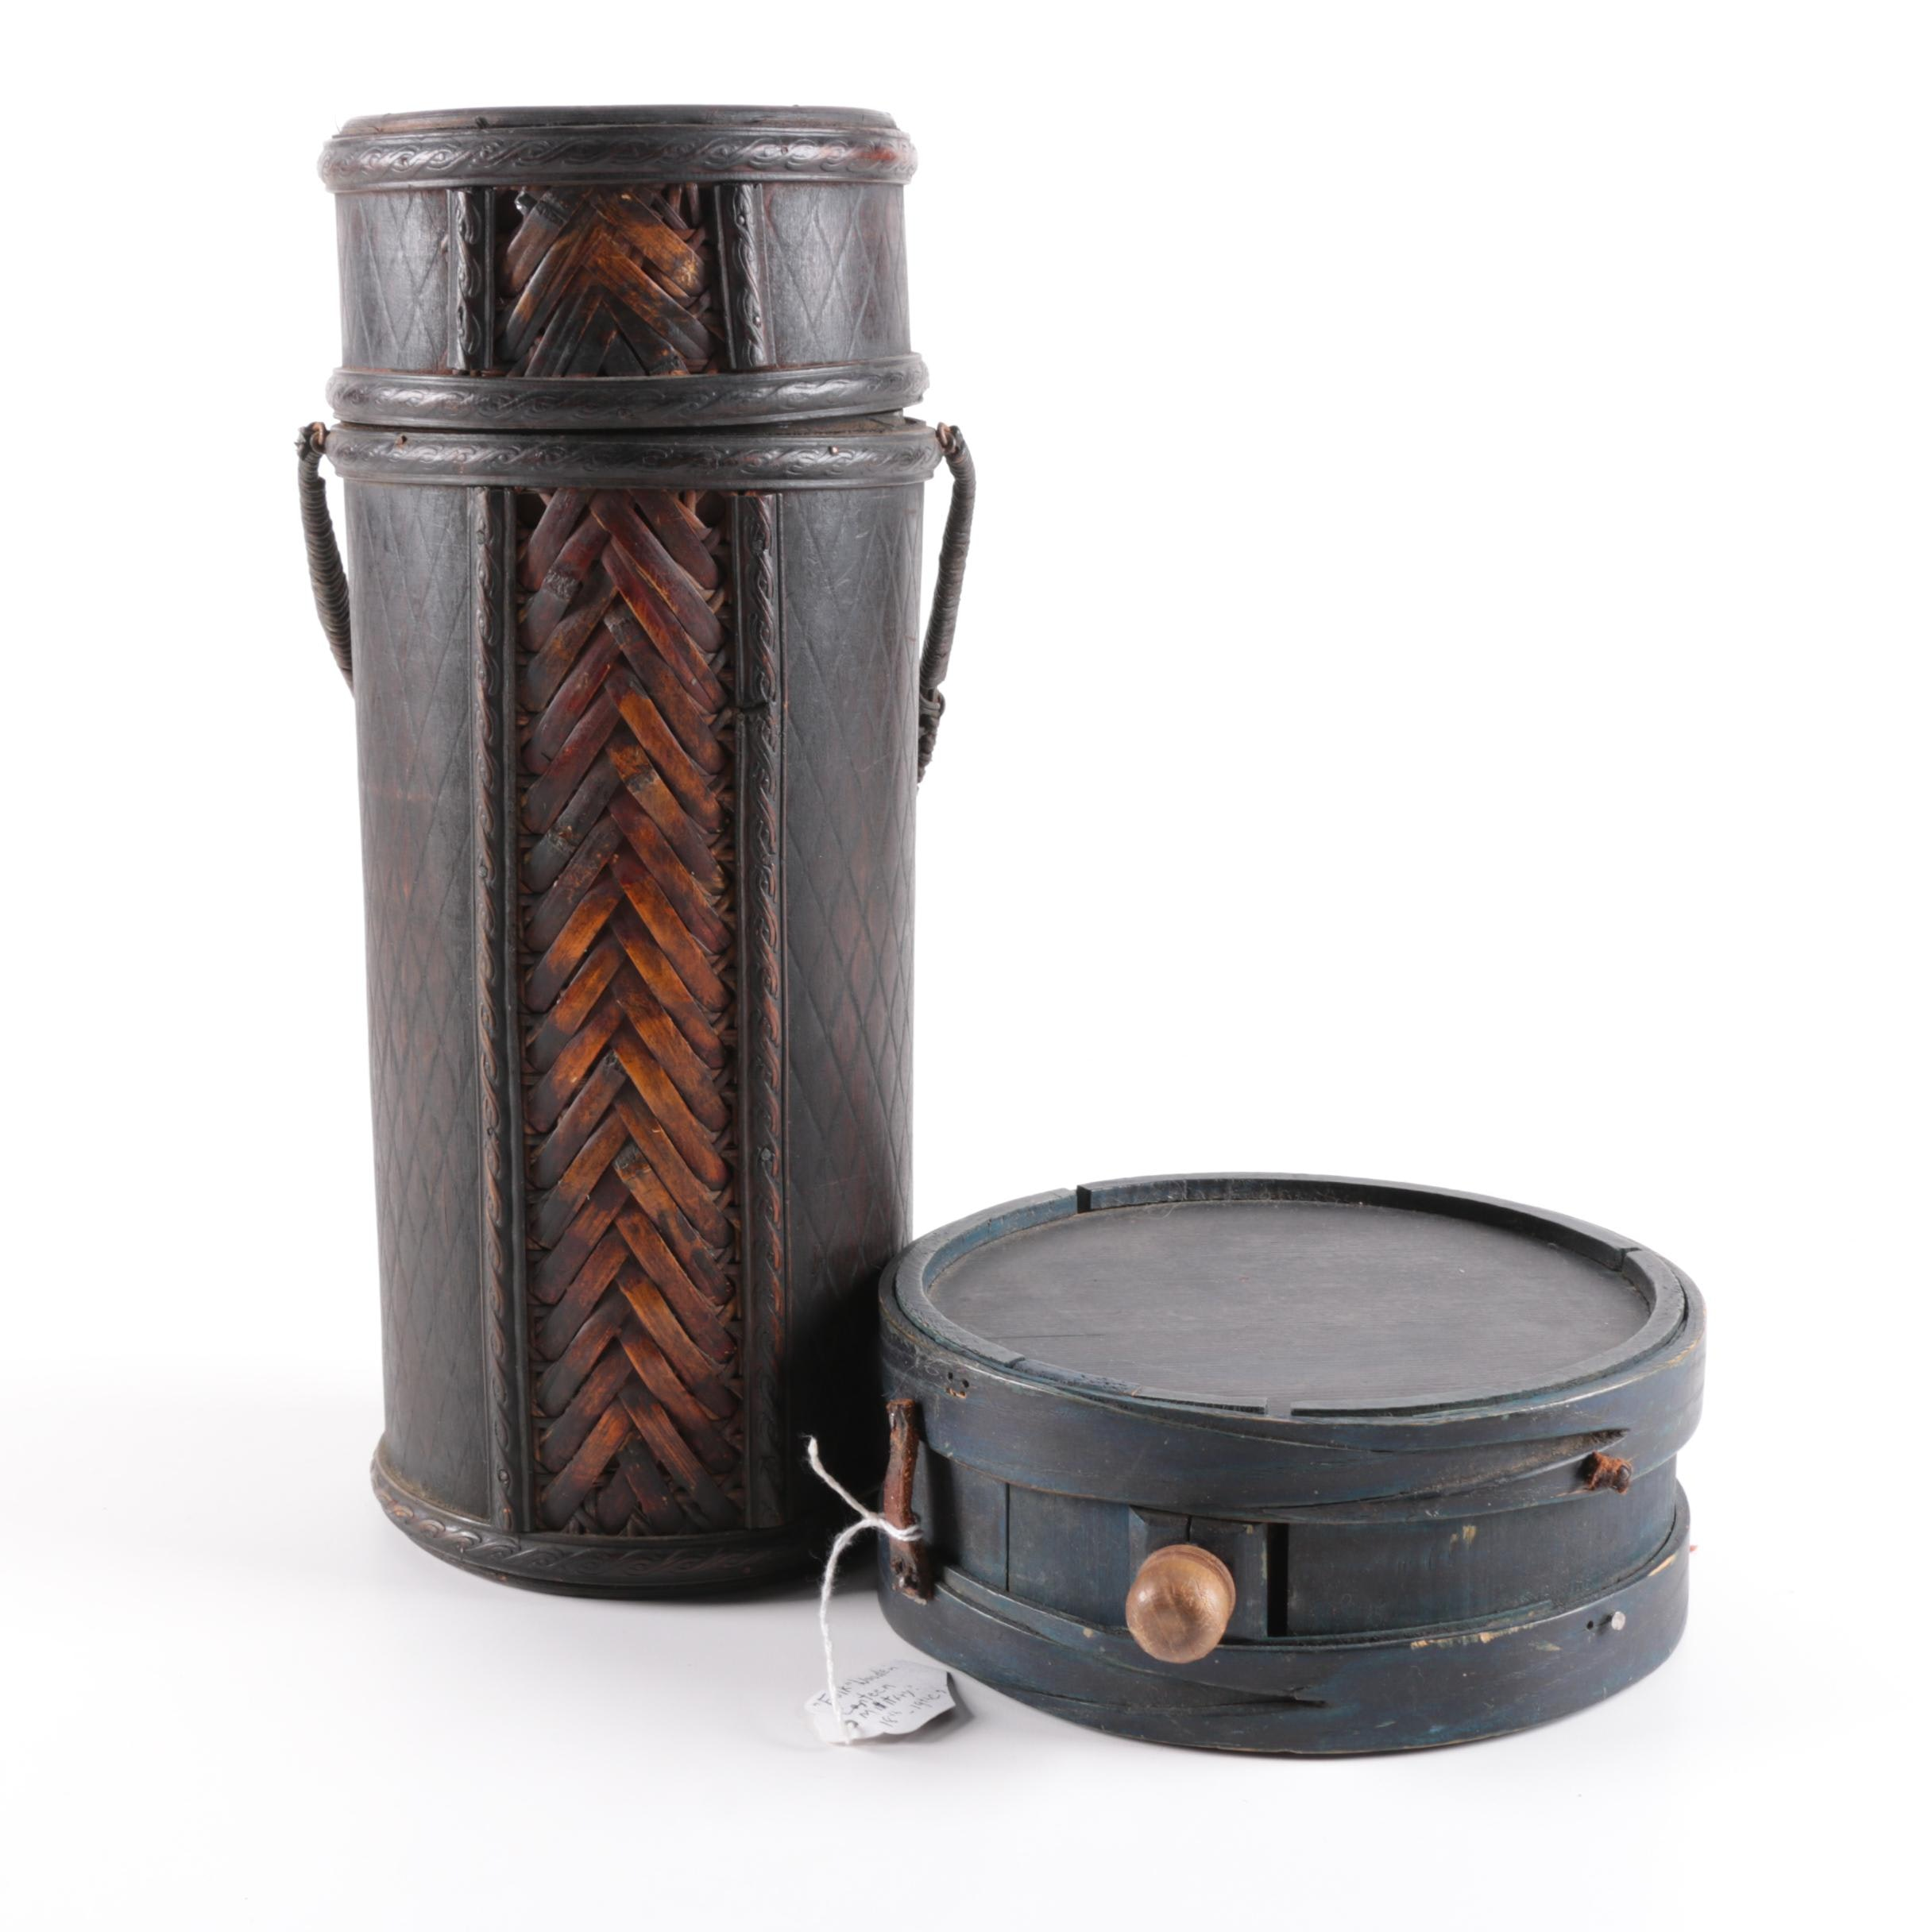 Antique Wooden Drum Canteen with Leather Bottle Canister